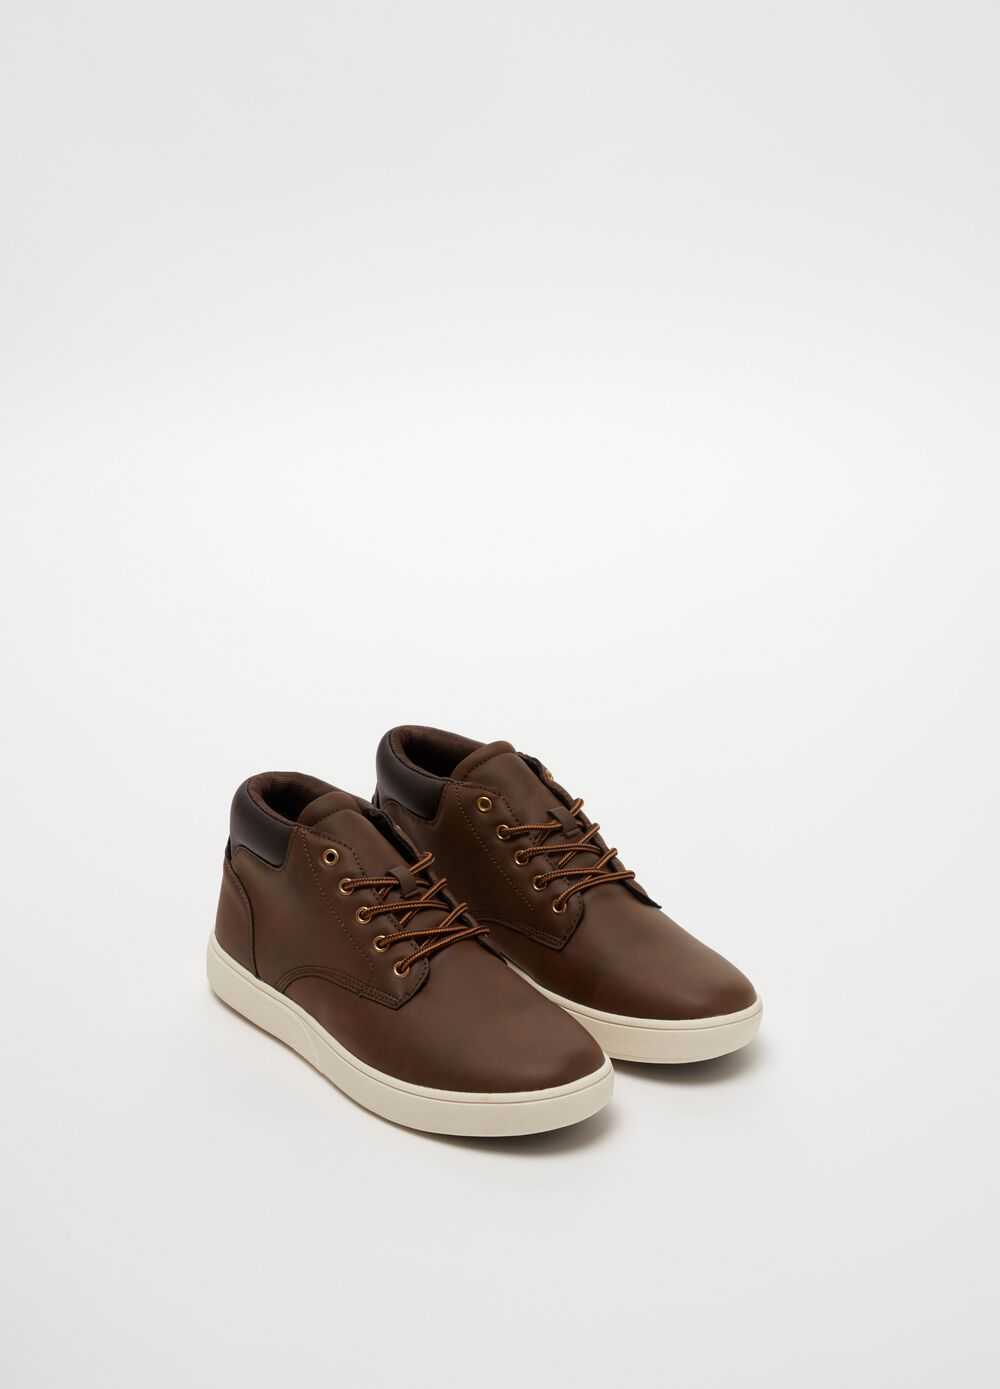 Suede-effect boots